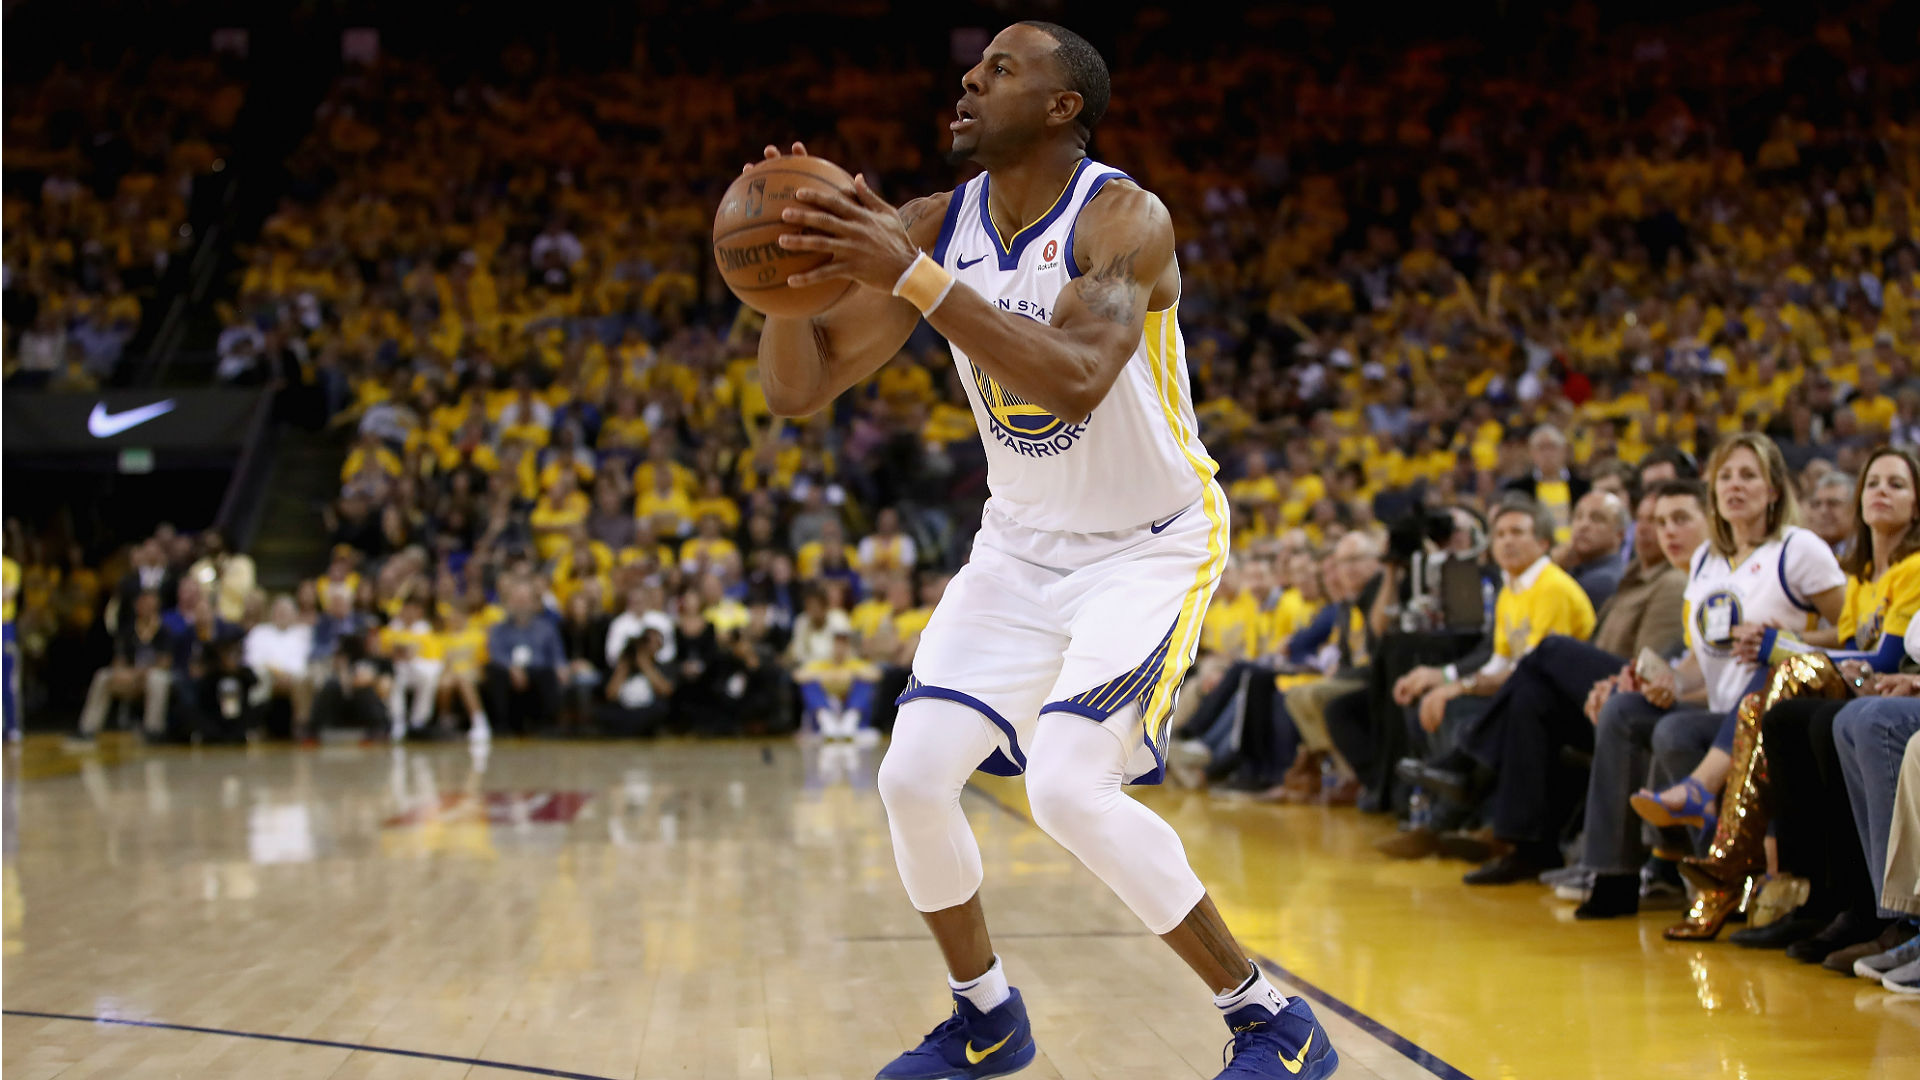 Warriors take Finals Game 2 behind sharp shooting of Curry